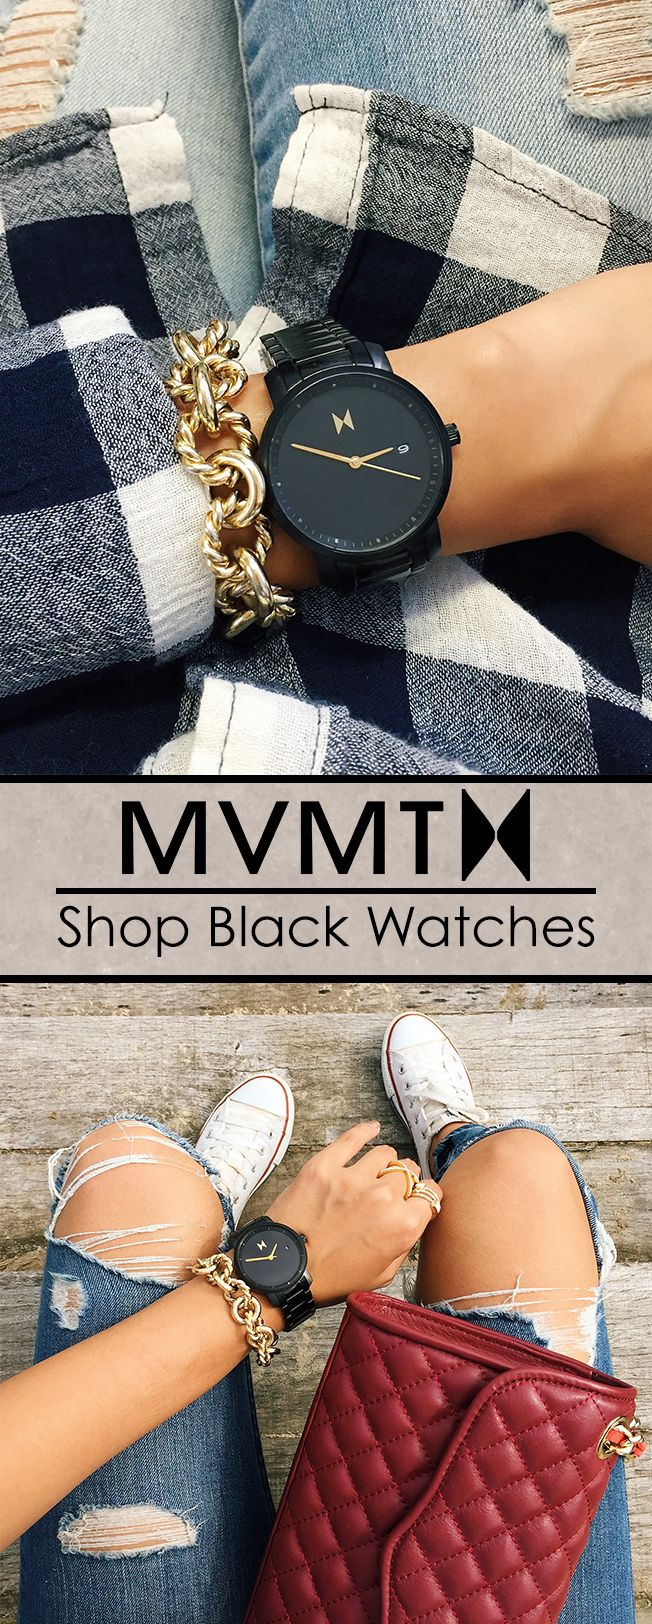 Designed in Santa Monica, California, and inspired by the electric spirit of Los Angeles, MVMT Watches set out to design a classic minimalist watch for women with a modern twist. For an unbelievable price your search for the perfect accessory ends here. Compliments guaranteed.